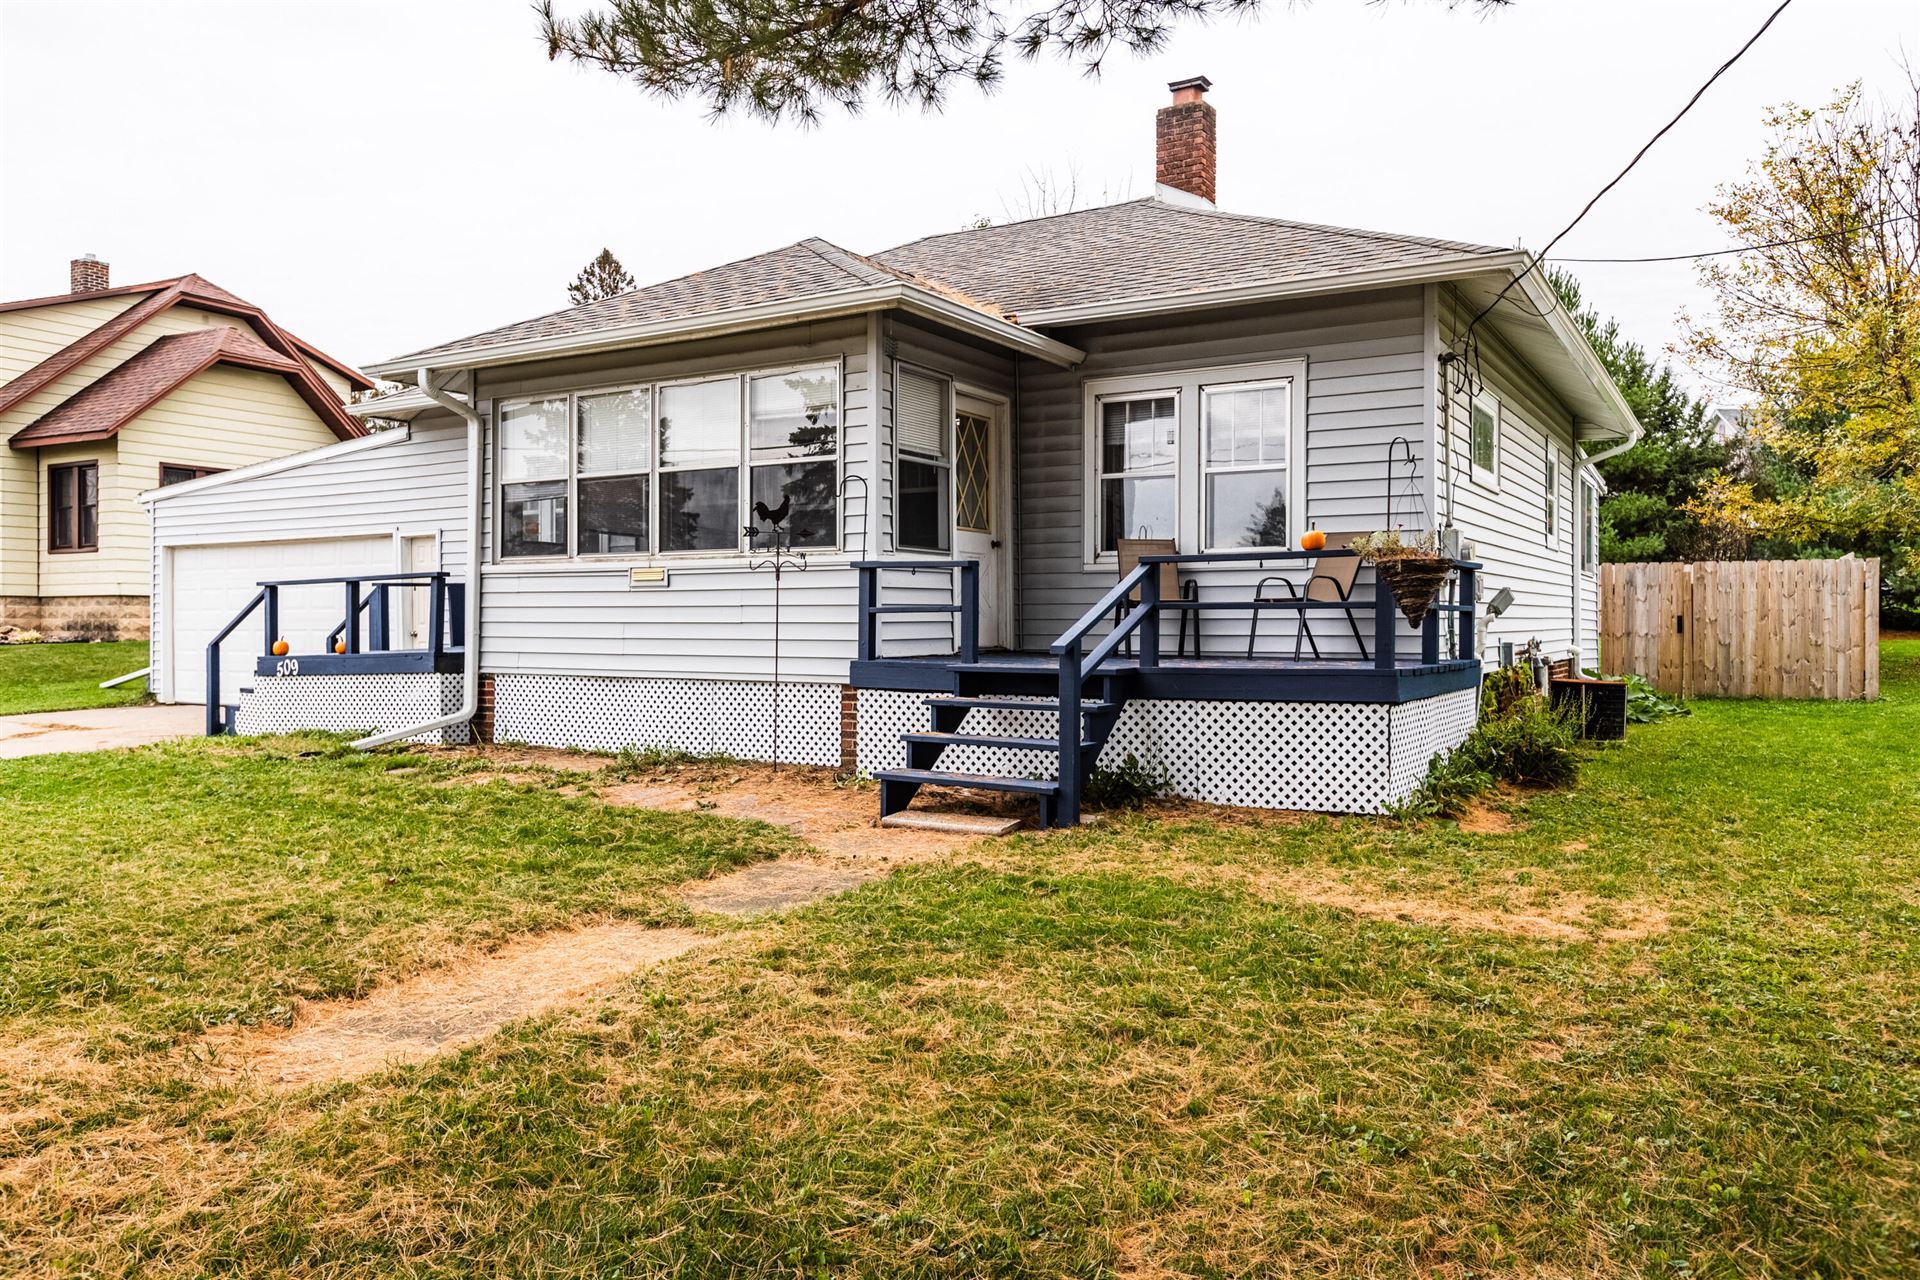 509 S Main St, Westby, WI 54667 - MLS#: 1767830